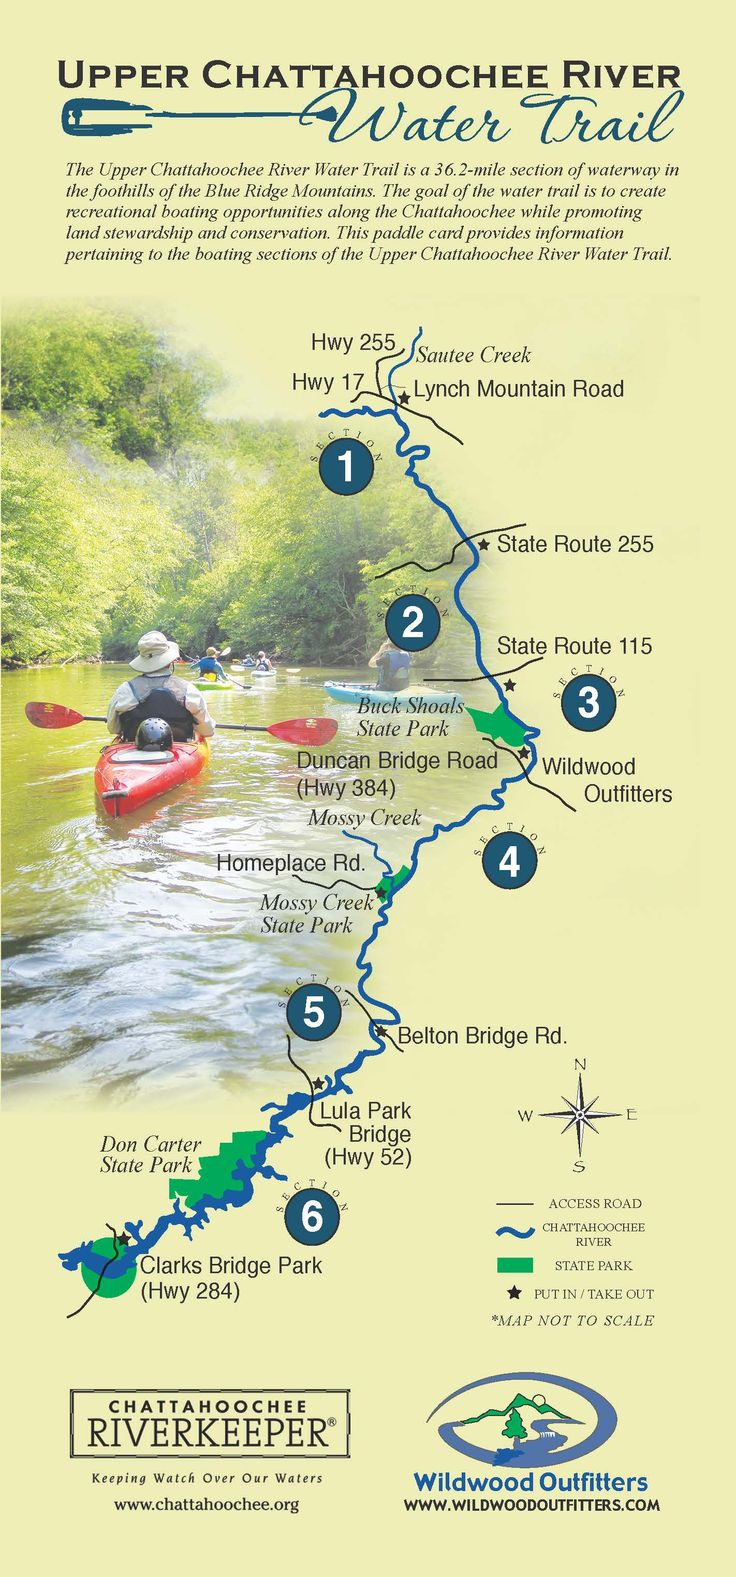 Upper Chattahoochee River Water Trail